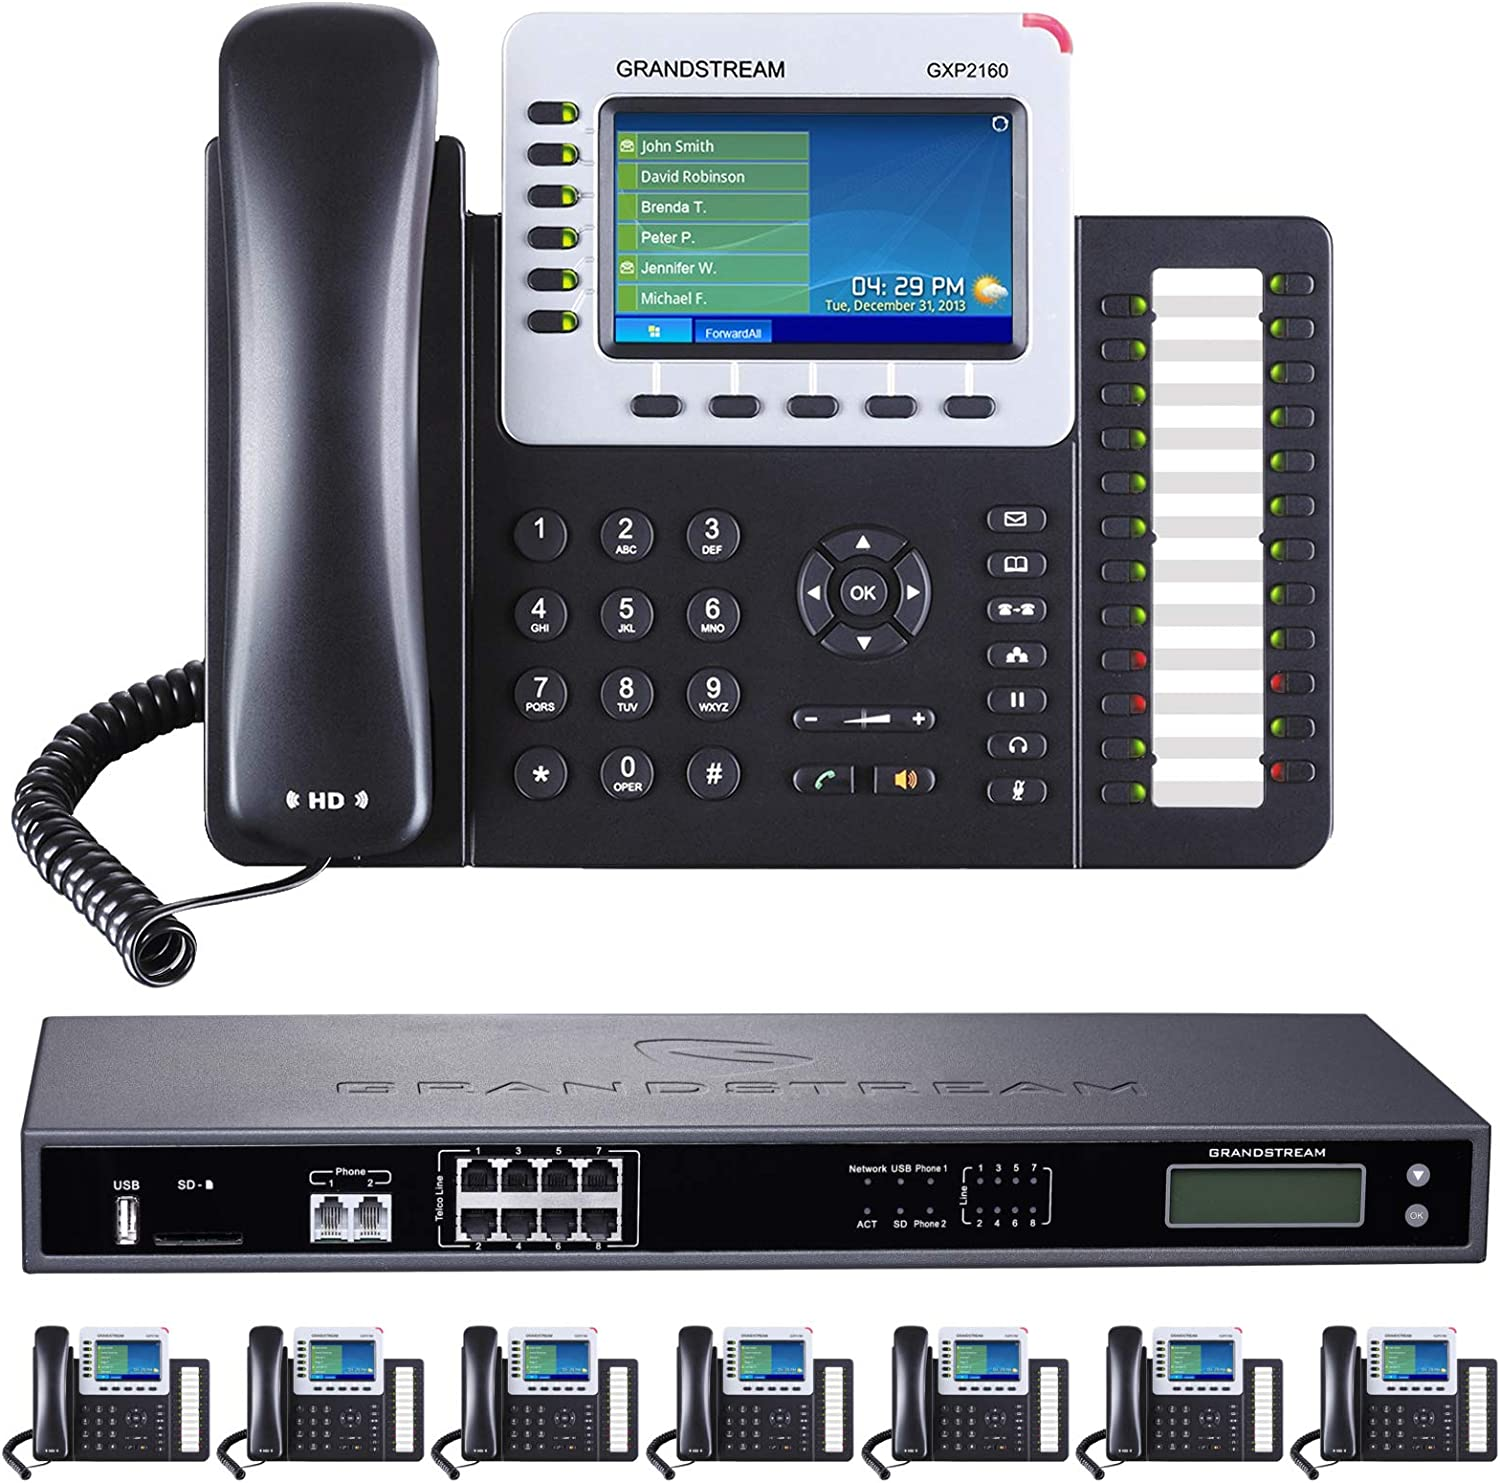 Business Phone System by Grandstream: 8-Line Ultimate Pack with Auto Attendant, Voicemail, Cell & Remote Phone Extensions, Call Recording & 1 Year Free Mission Machines Phone Service (8 Phone Bundle)